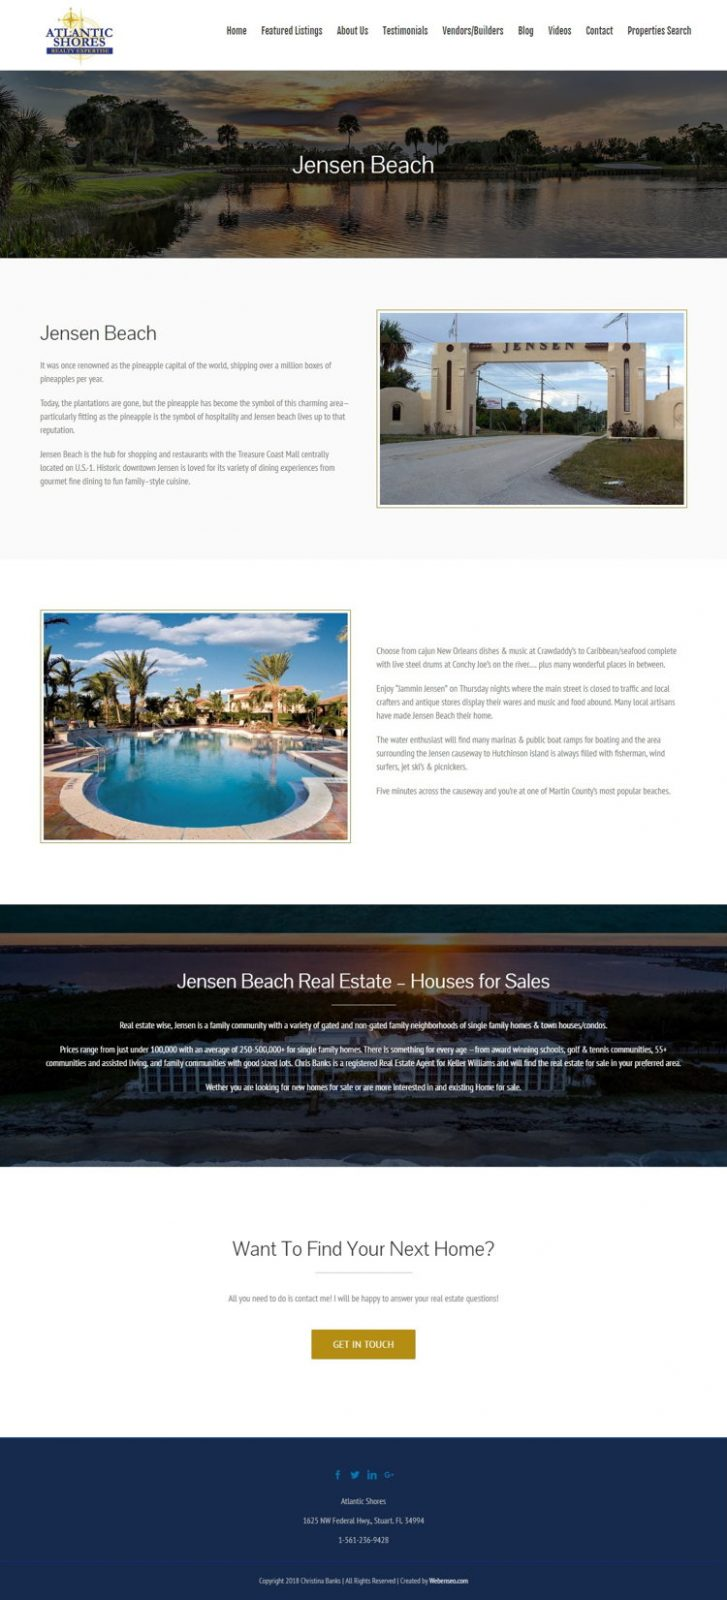 Atlantic Shores - Bluelinemedia - Redizajn Web Sajta